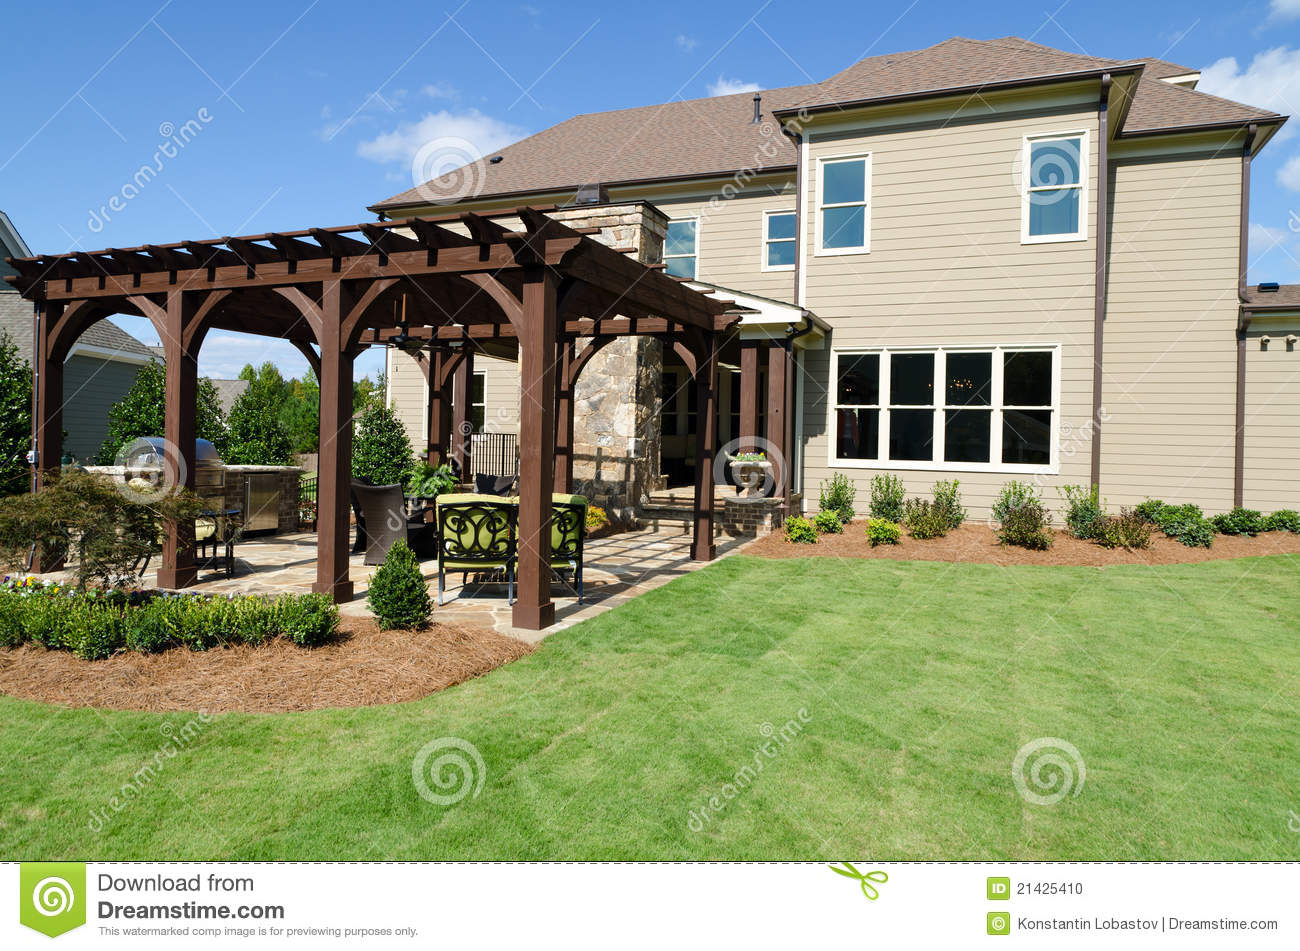 Backyard With Pergola backyard with pergola stock photo 21425410 - megapixl